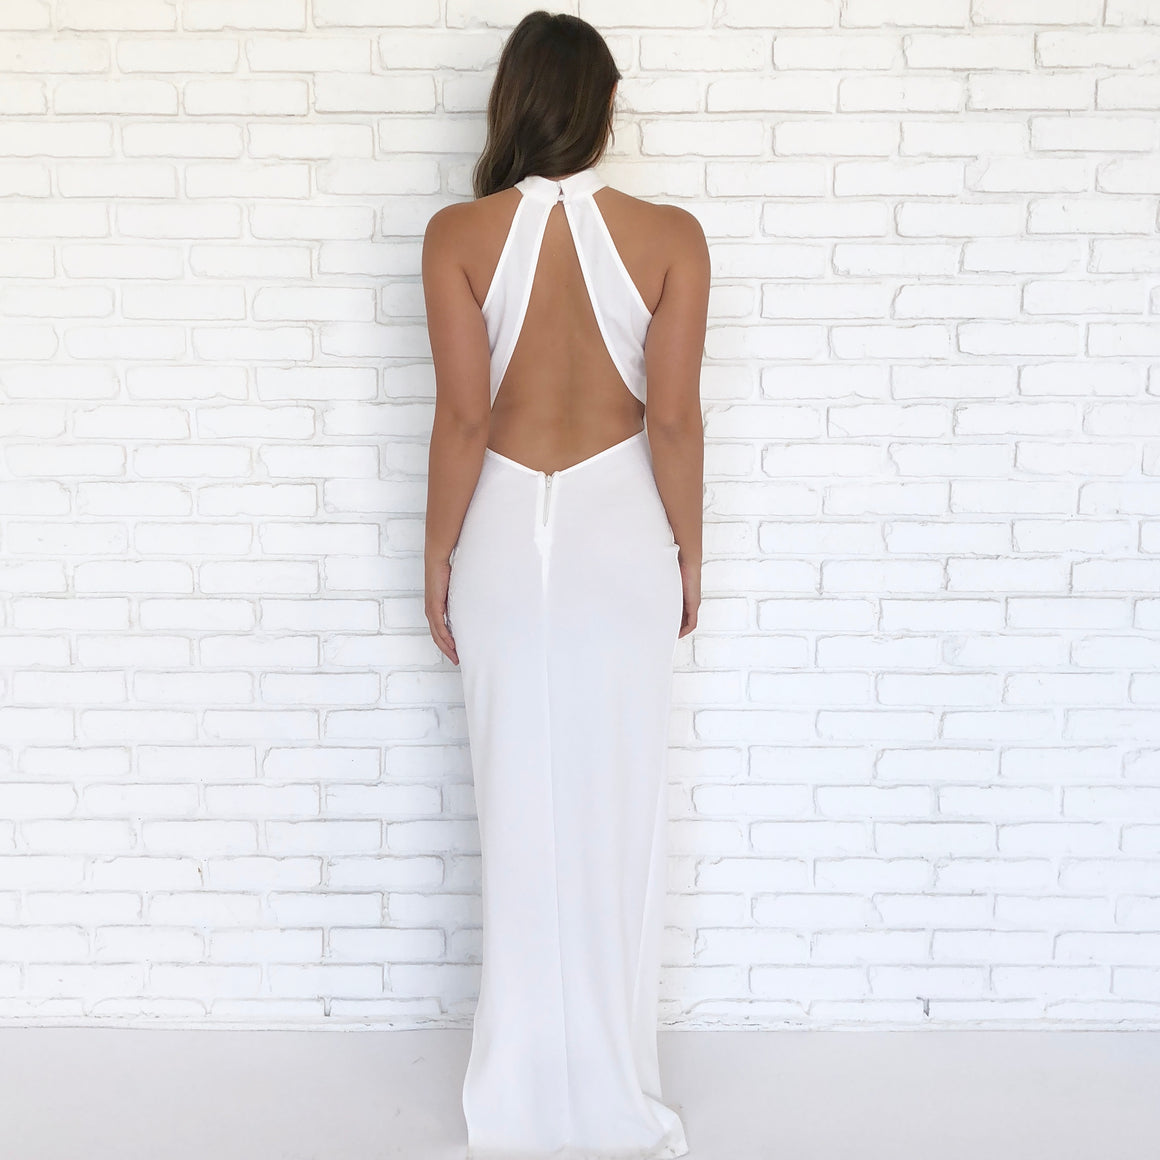 Purity White Backless Maxi Dress - Dainty Hooligan